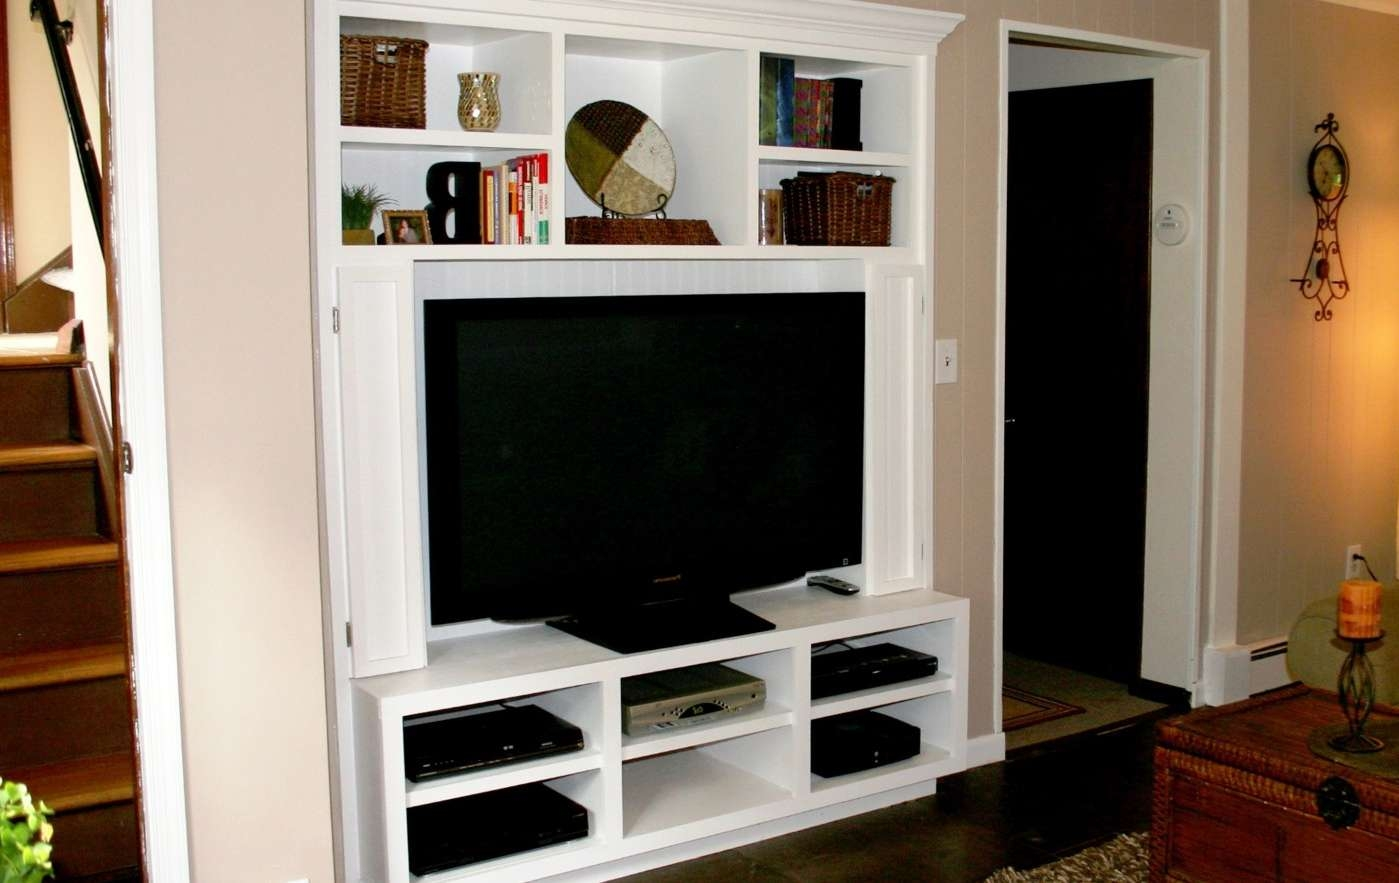 Tv : Fantastic Tv Stand White Gloss Ebay Incredible Wayfair Tv With Regard To Ovid White Tv Stands (View 13 of 15)